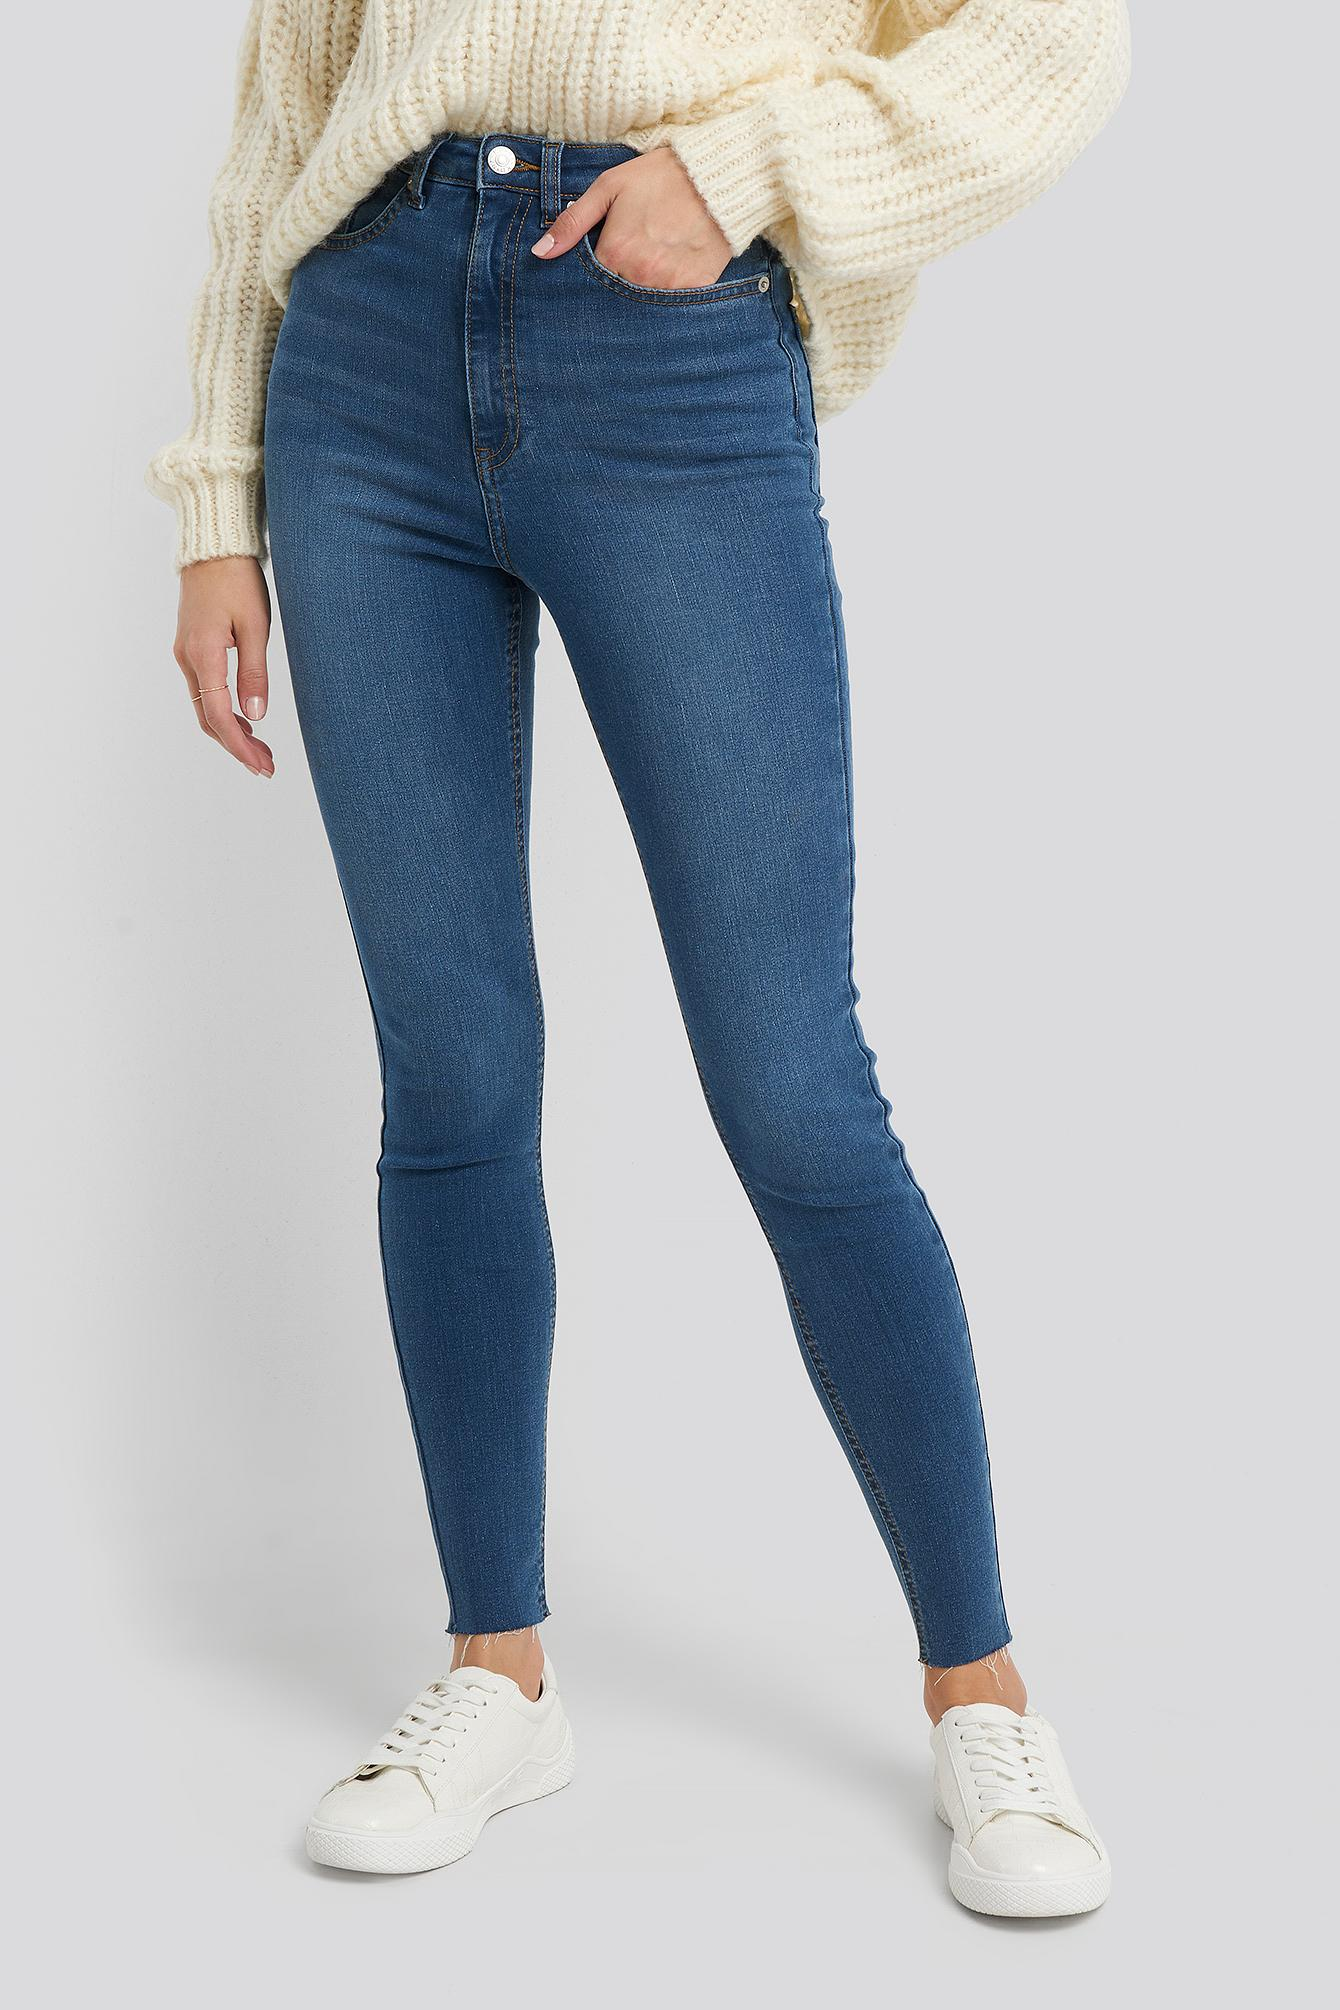 Super High Waist Skinny Jeans Jean NA-KD en coloris Bleu